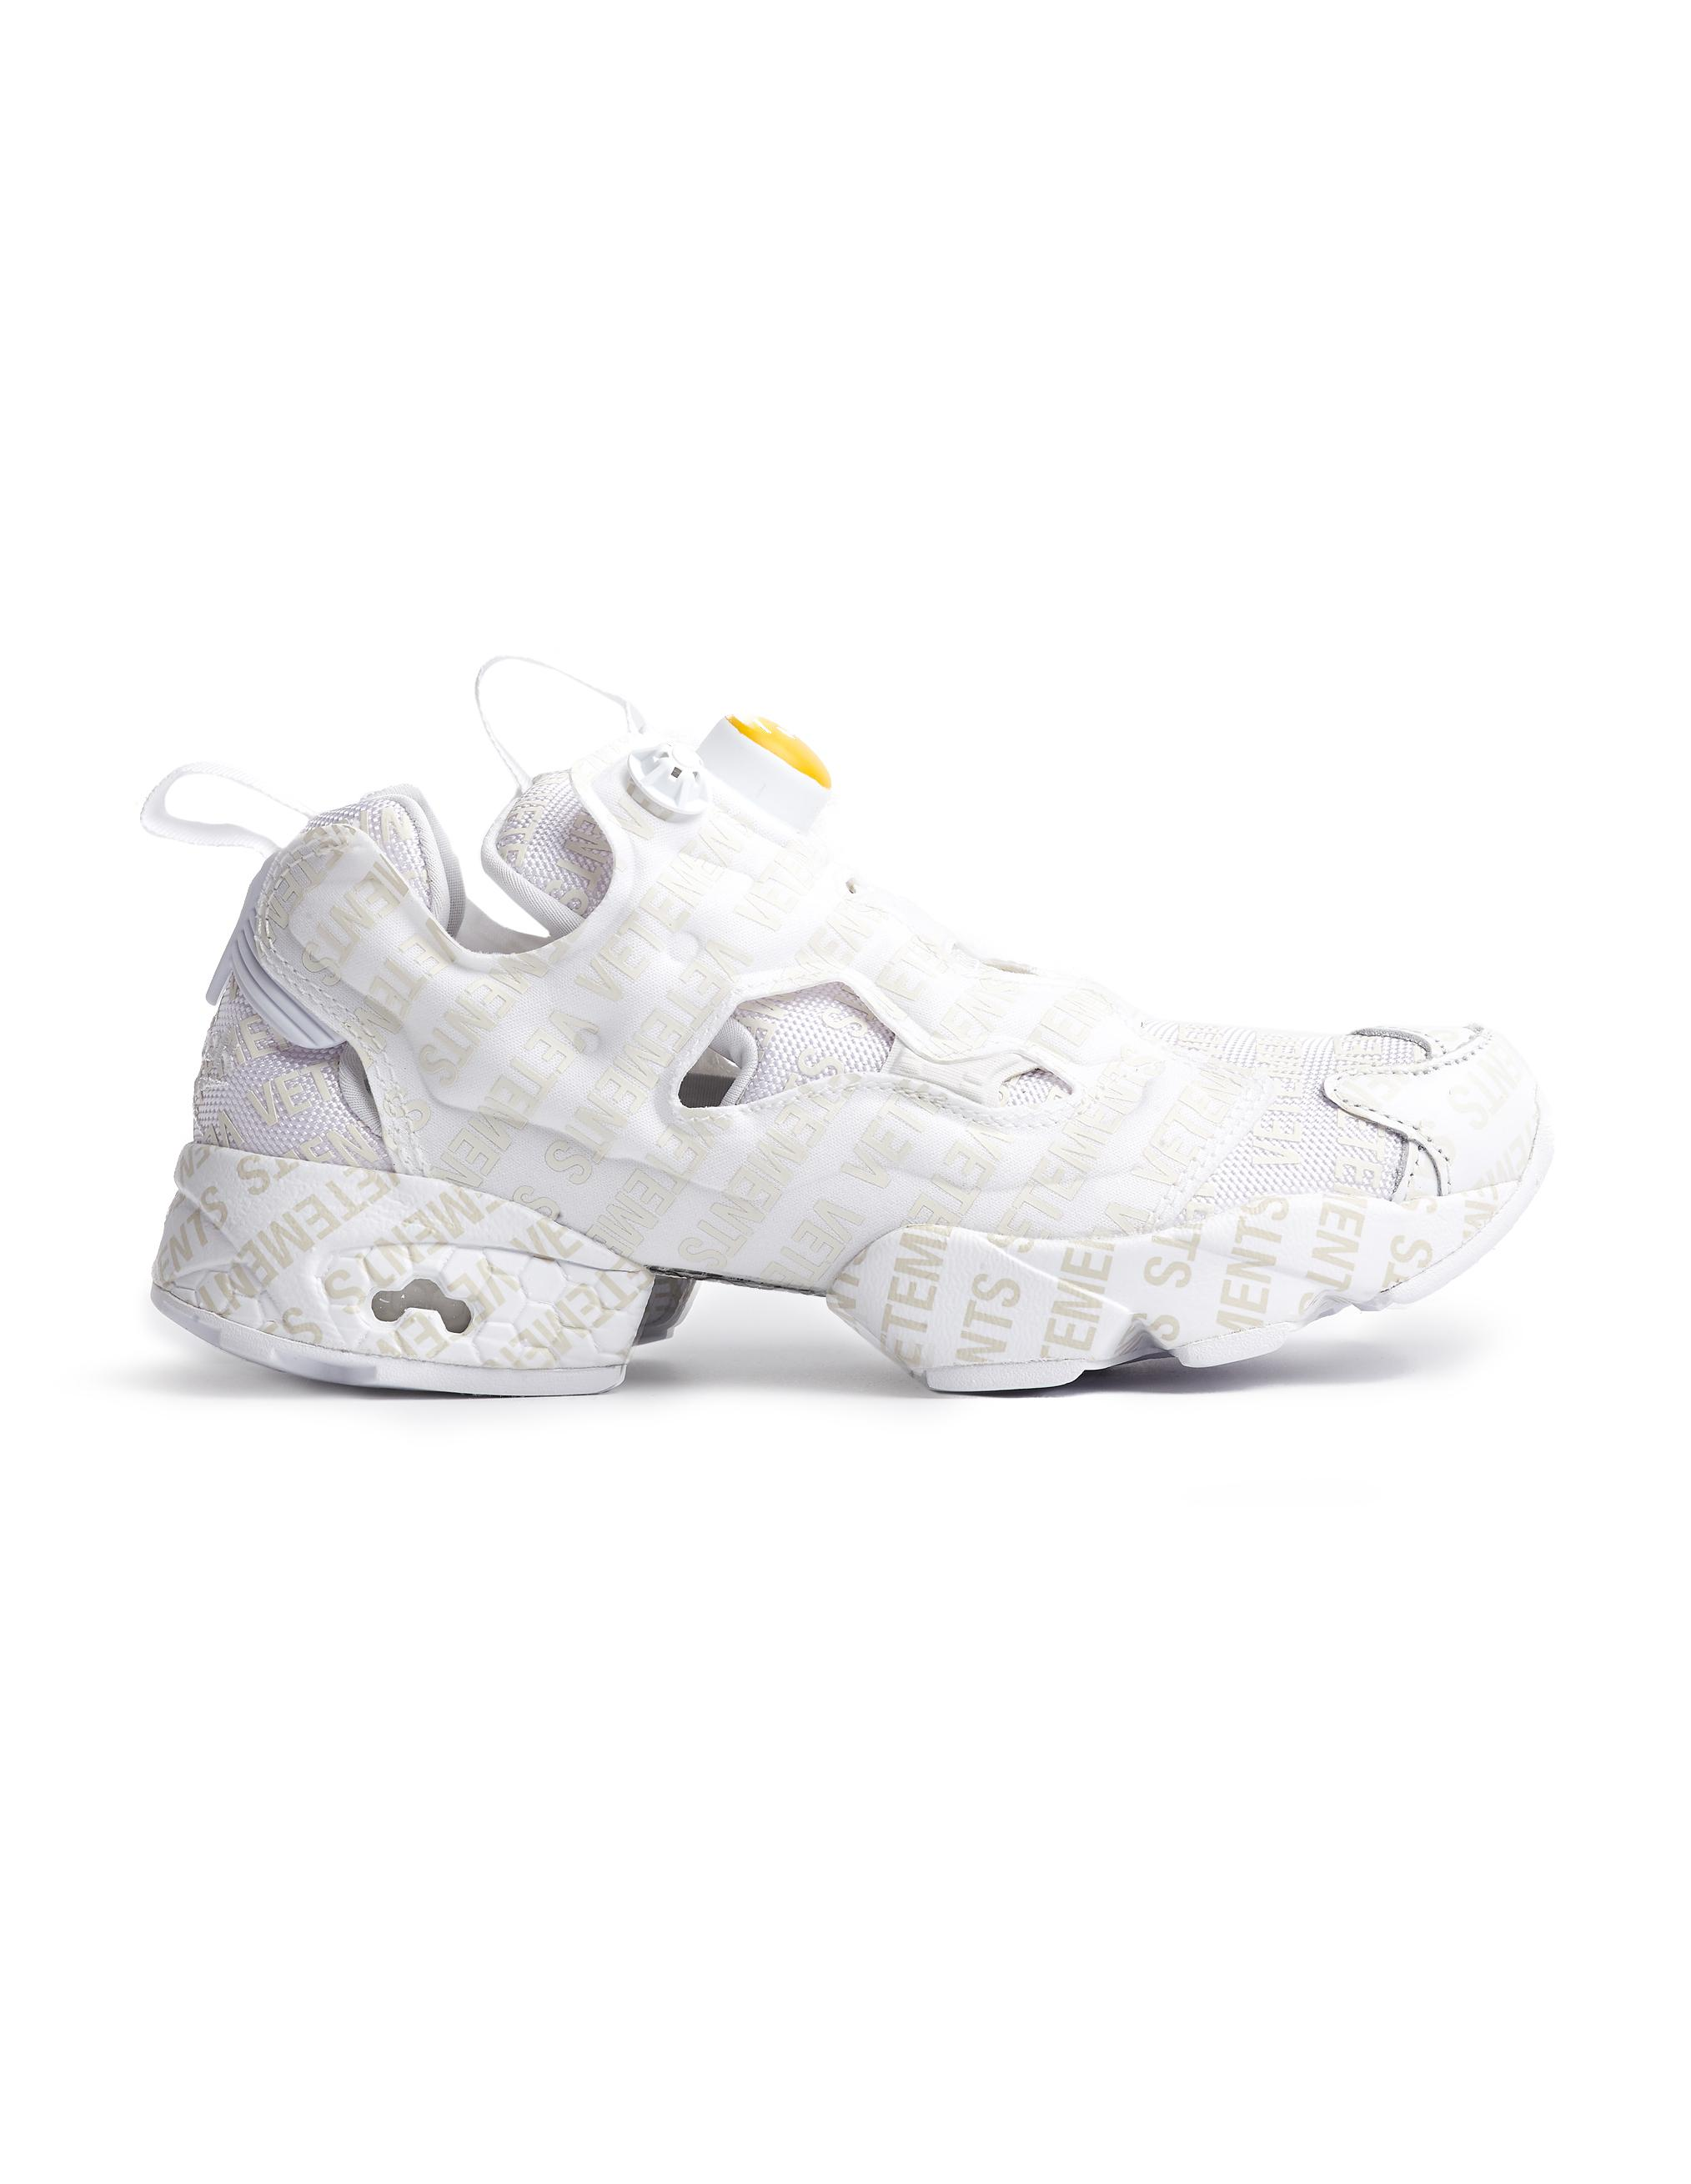 95e8d94e067 Lyst - Vetements Reebok Instapump Fury Emoji Sneakers in White